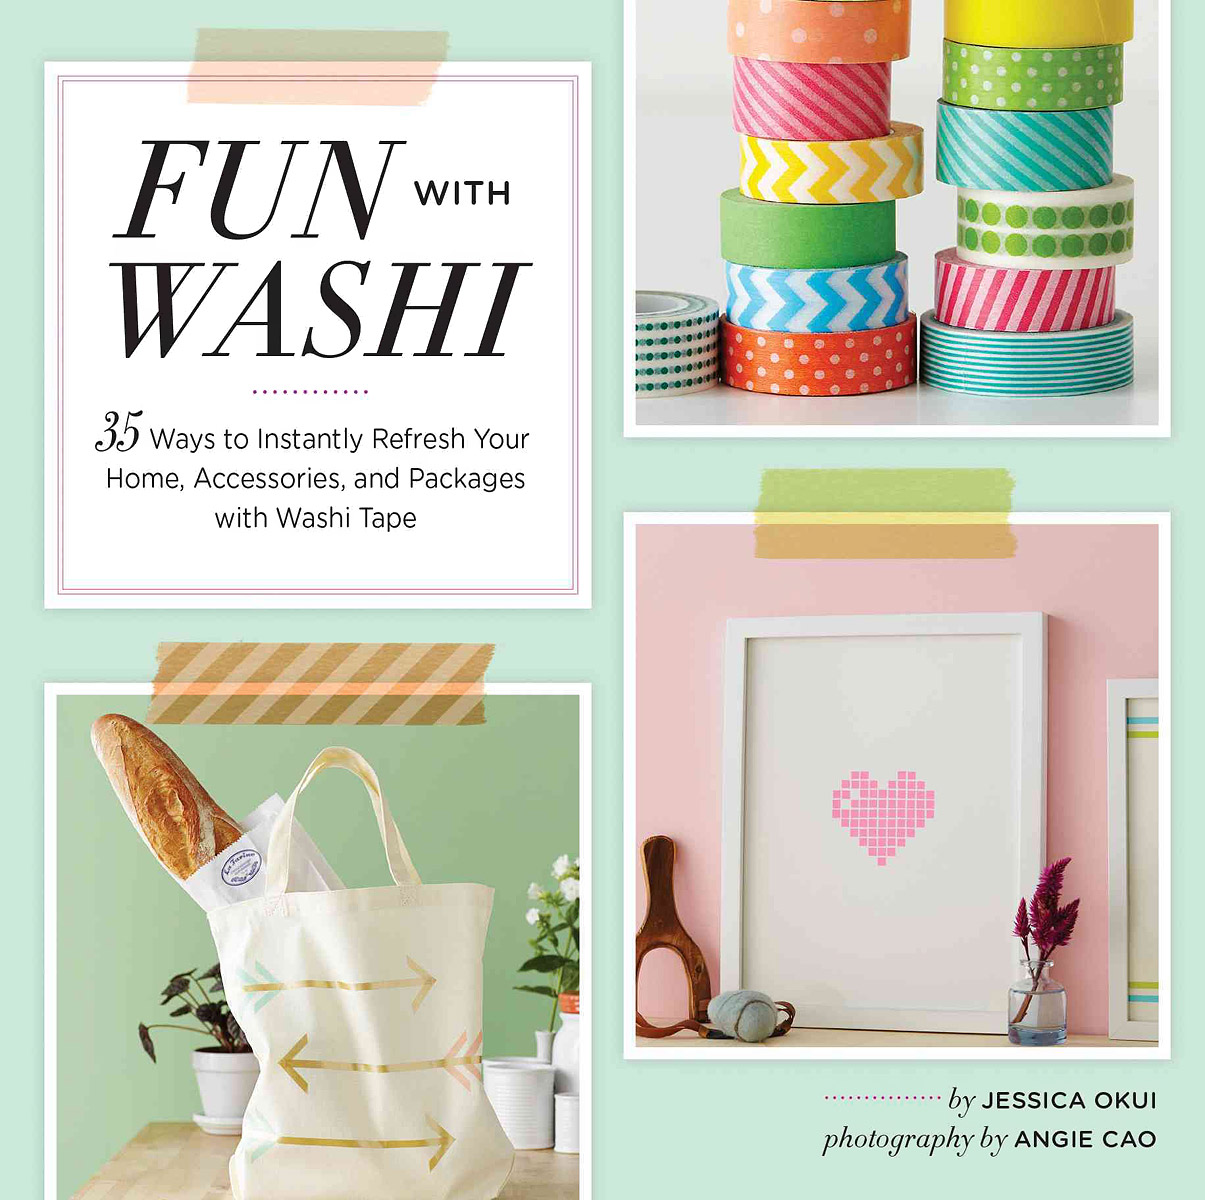 Fun With Washi: 35 Ways to Instantly Refresh Your Home, Accessories, and Packages with Washi Tape glade саше ароматическое hang it and refresh океанский оазис 8гр